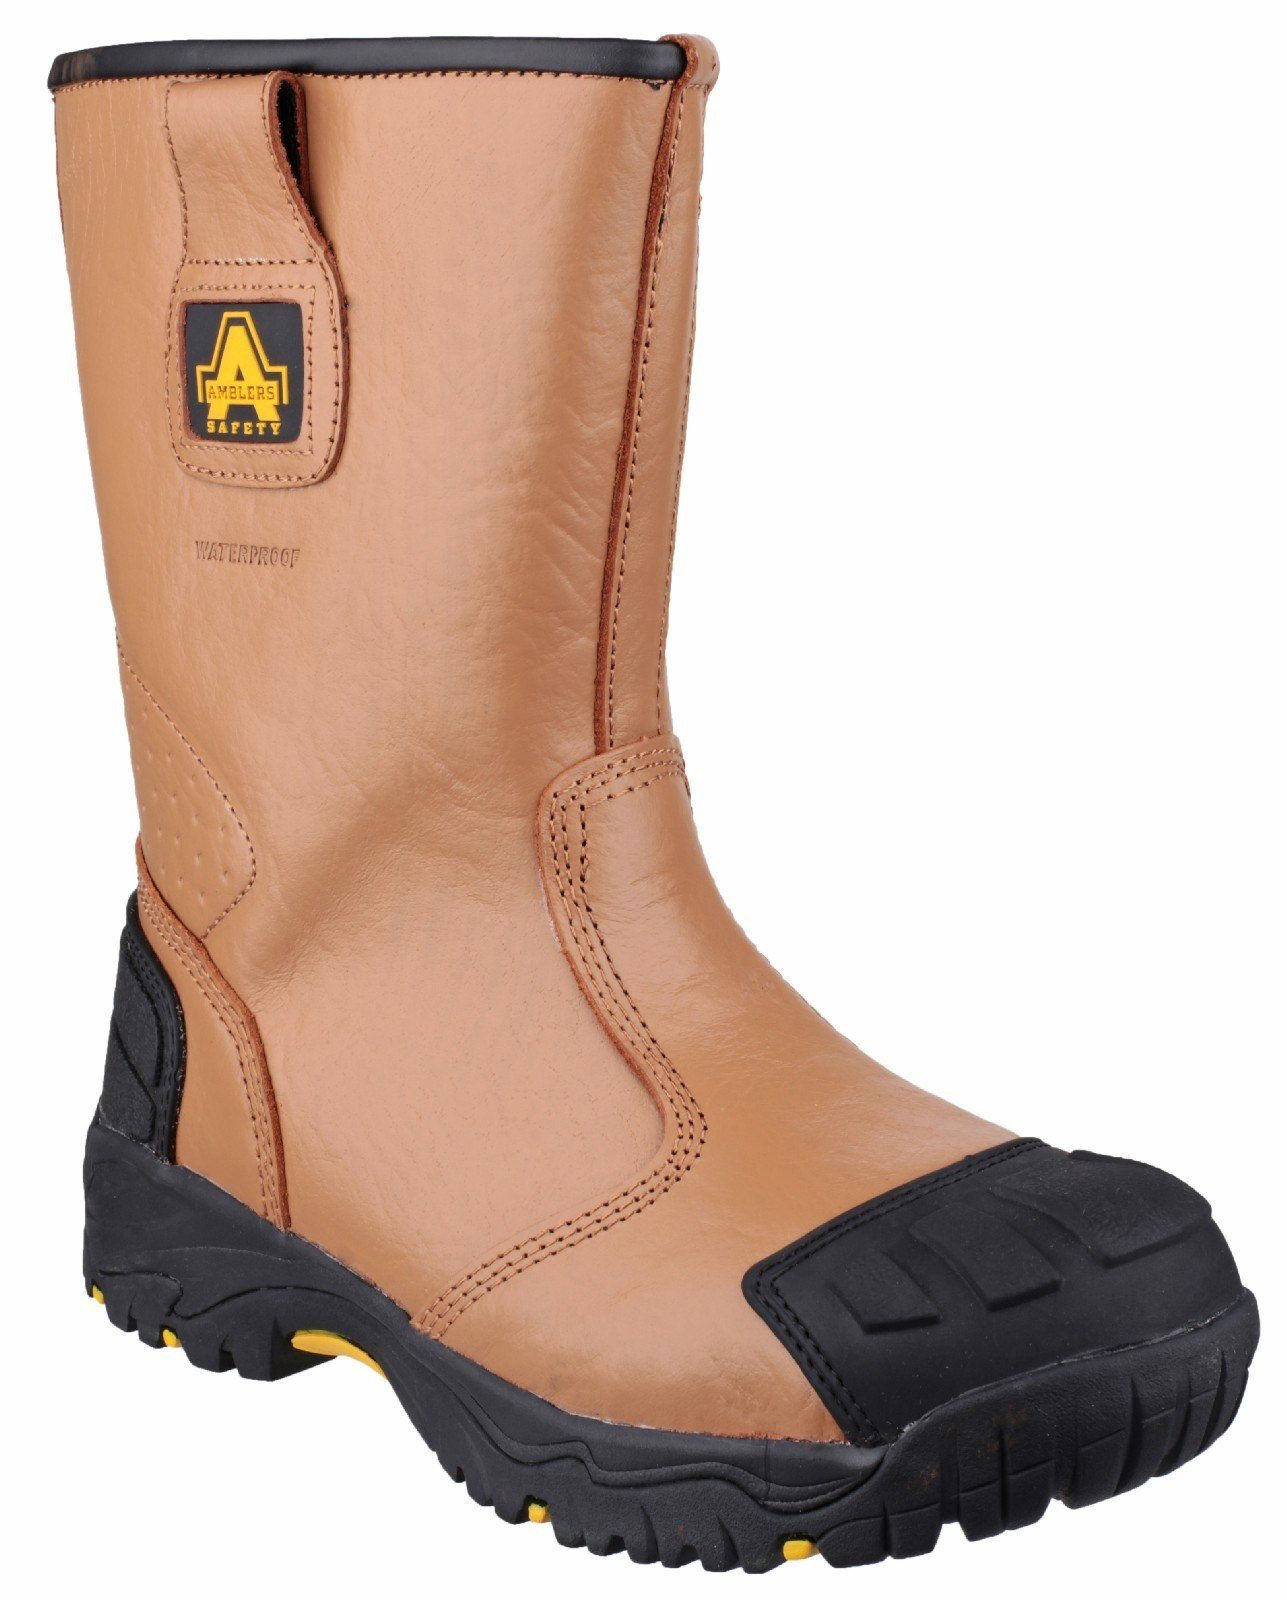 Amblers Unisex Safety Waterproof pull on Rigger Boot Tan 21835 - Tan 6